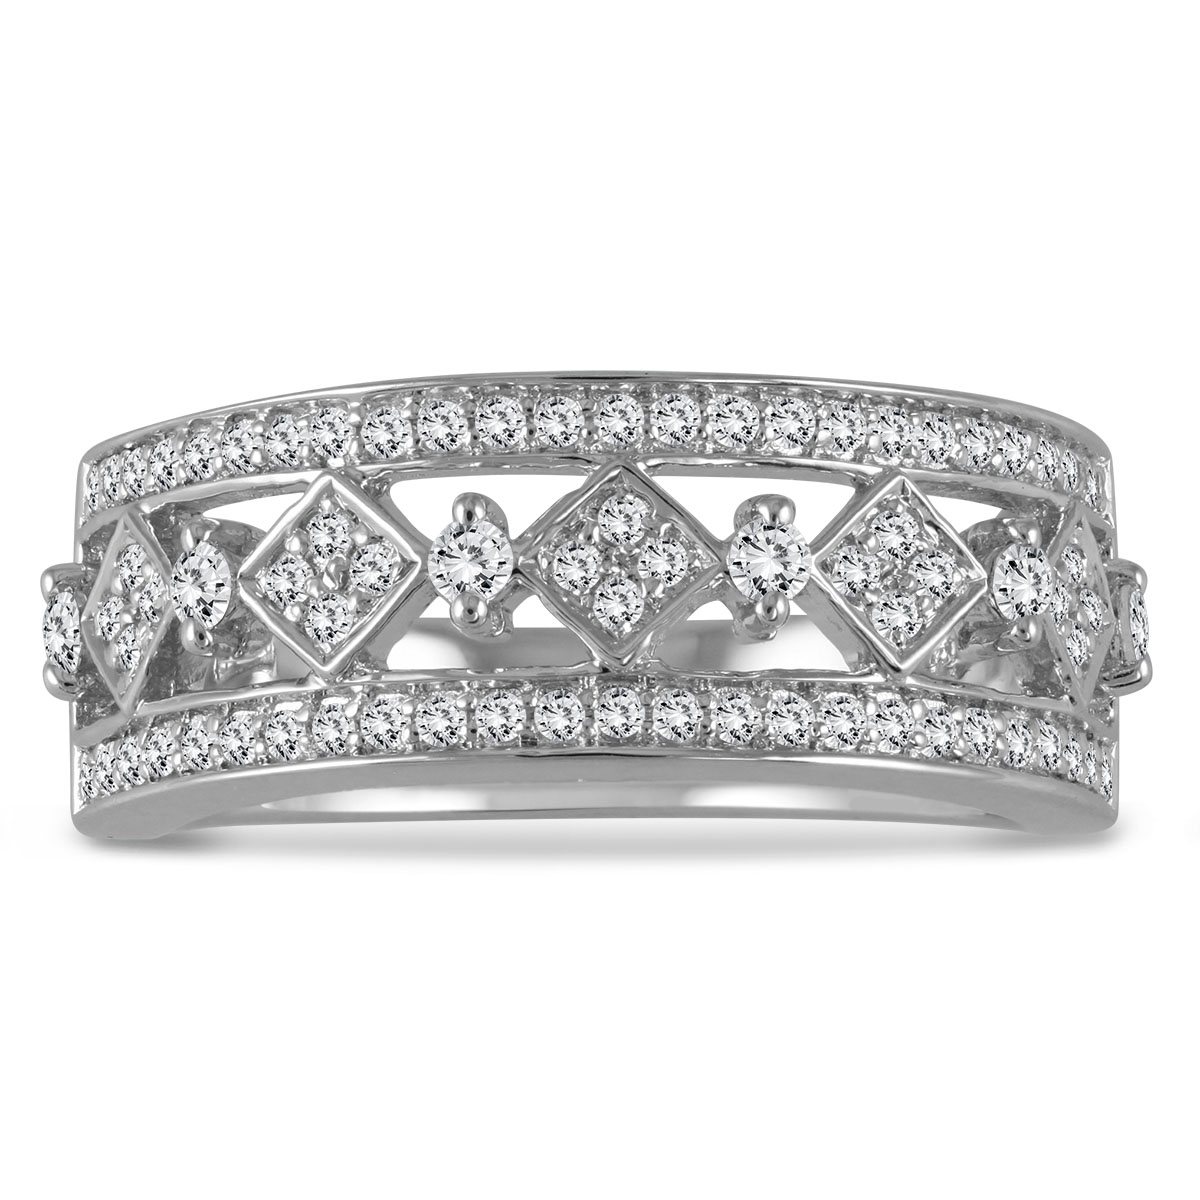 1/2 Carat TW Diamond Byzintine Inspired Ring in 10K White Gold RGF56682